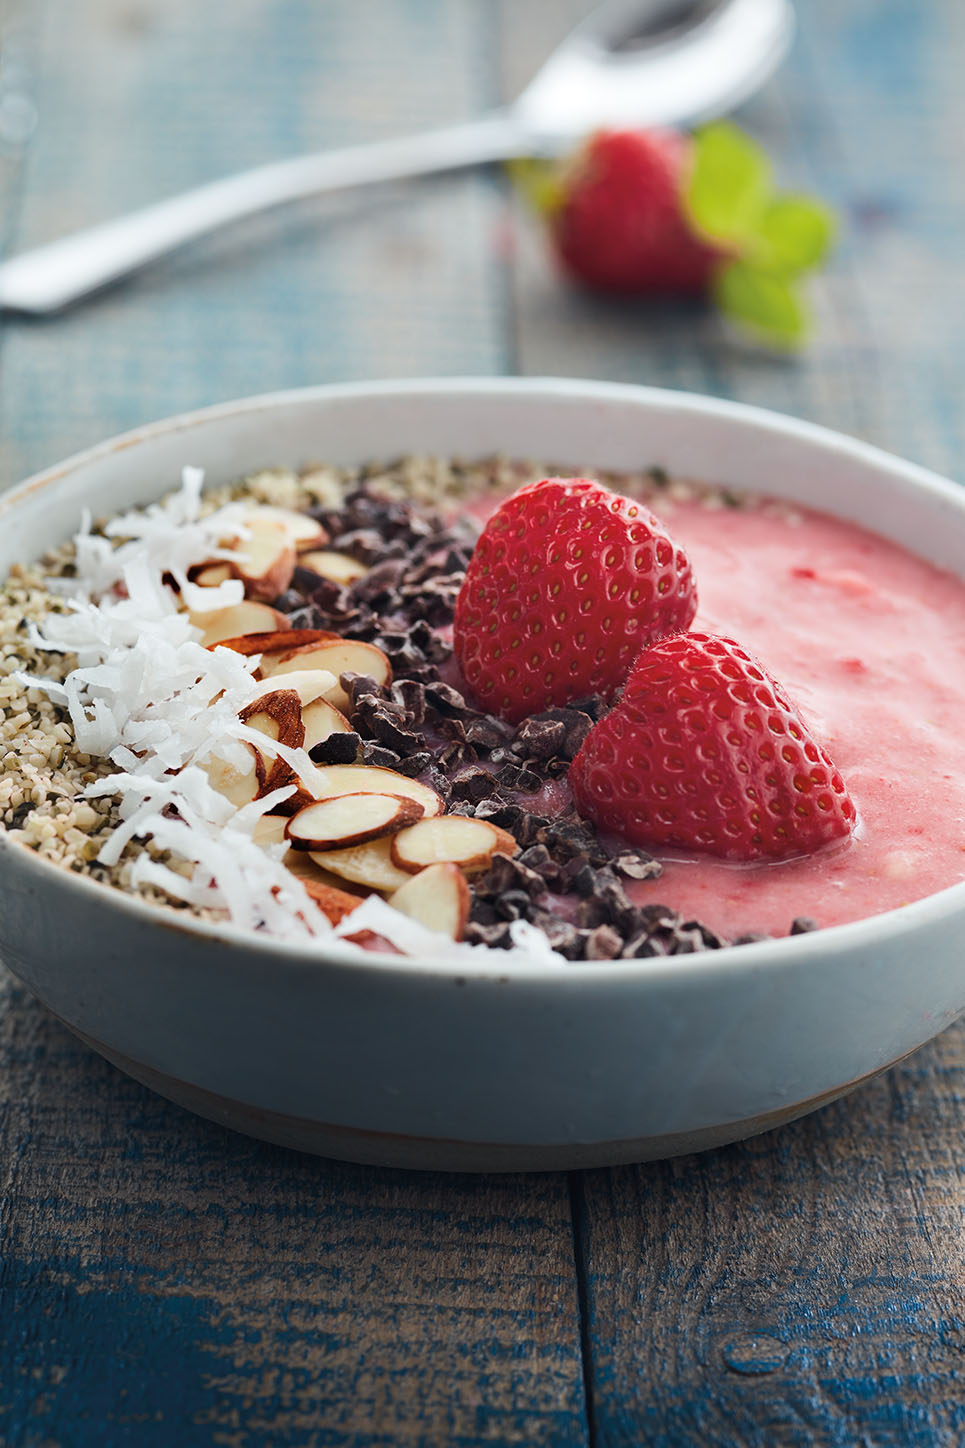 Strawberry banana smoothie bowl 01.jpg